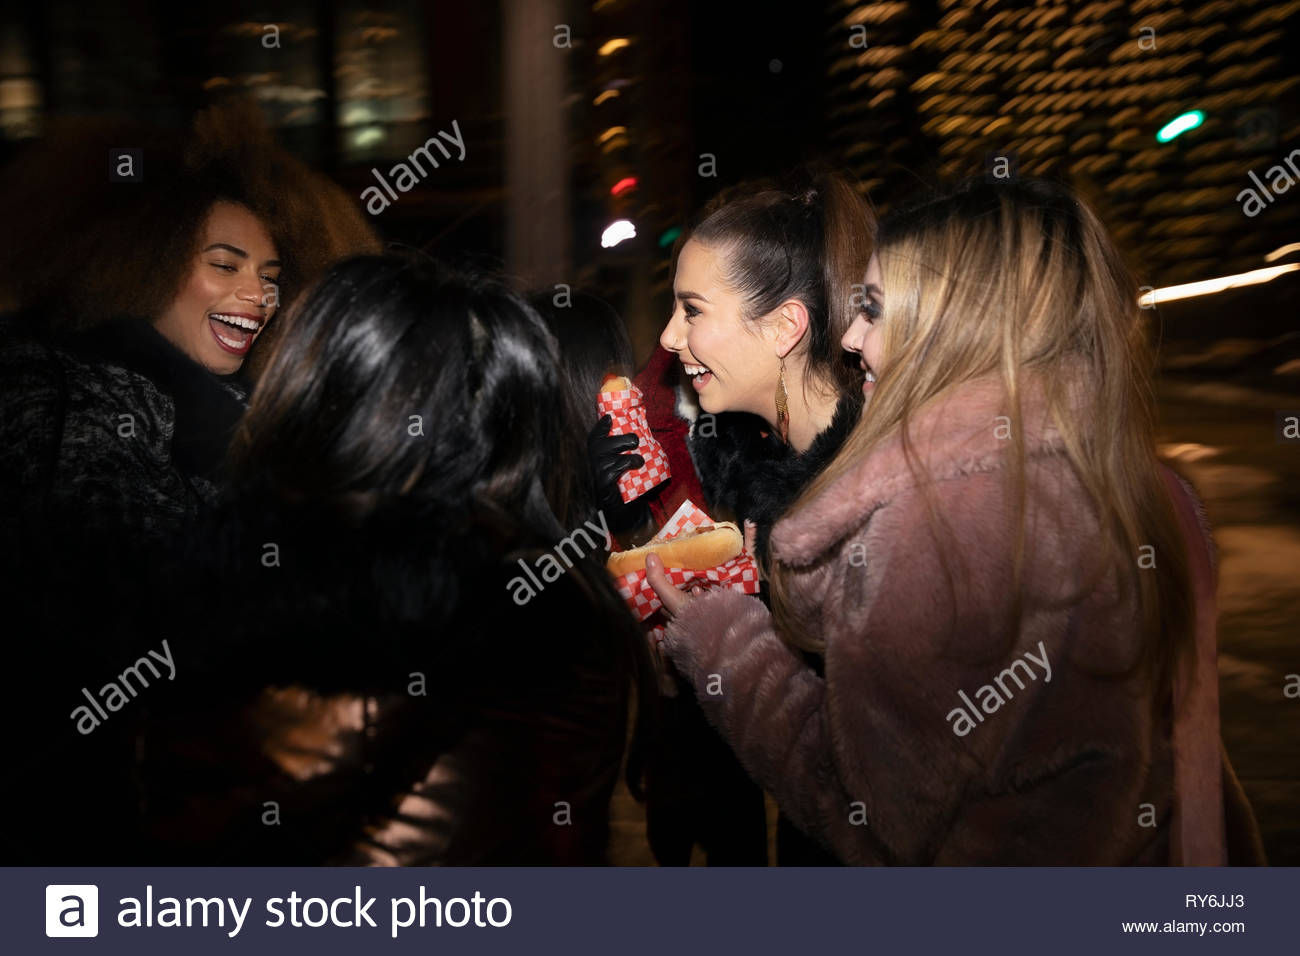 Women friends eating hot dogs on urban street at night - Stock Image